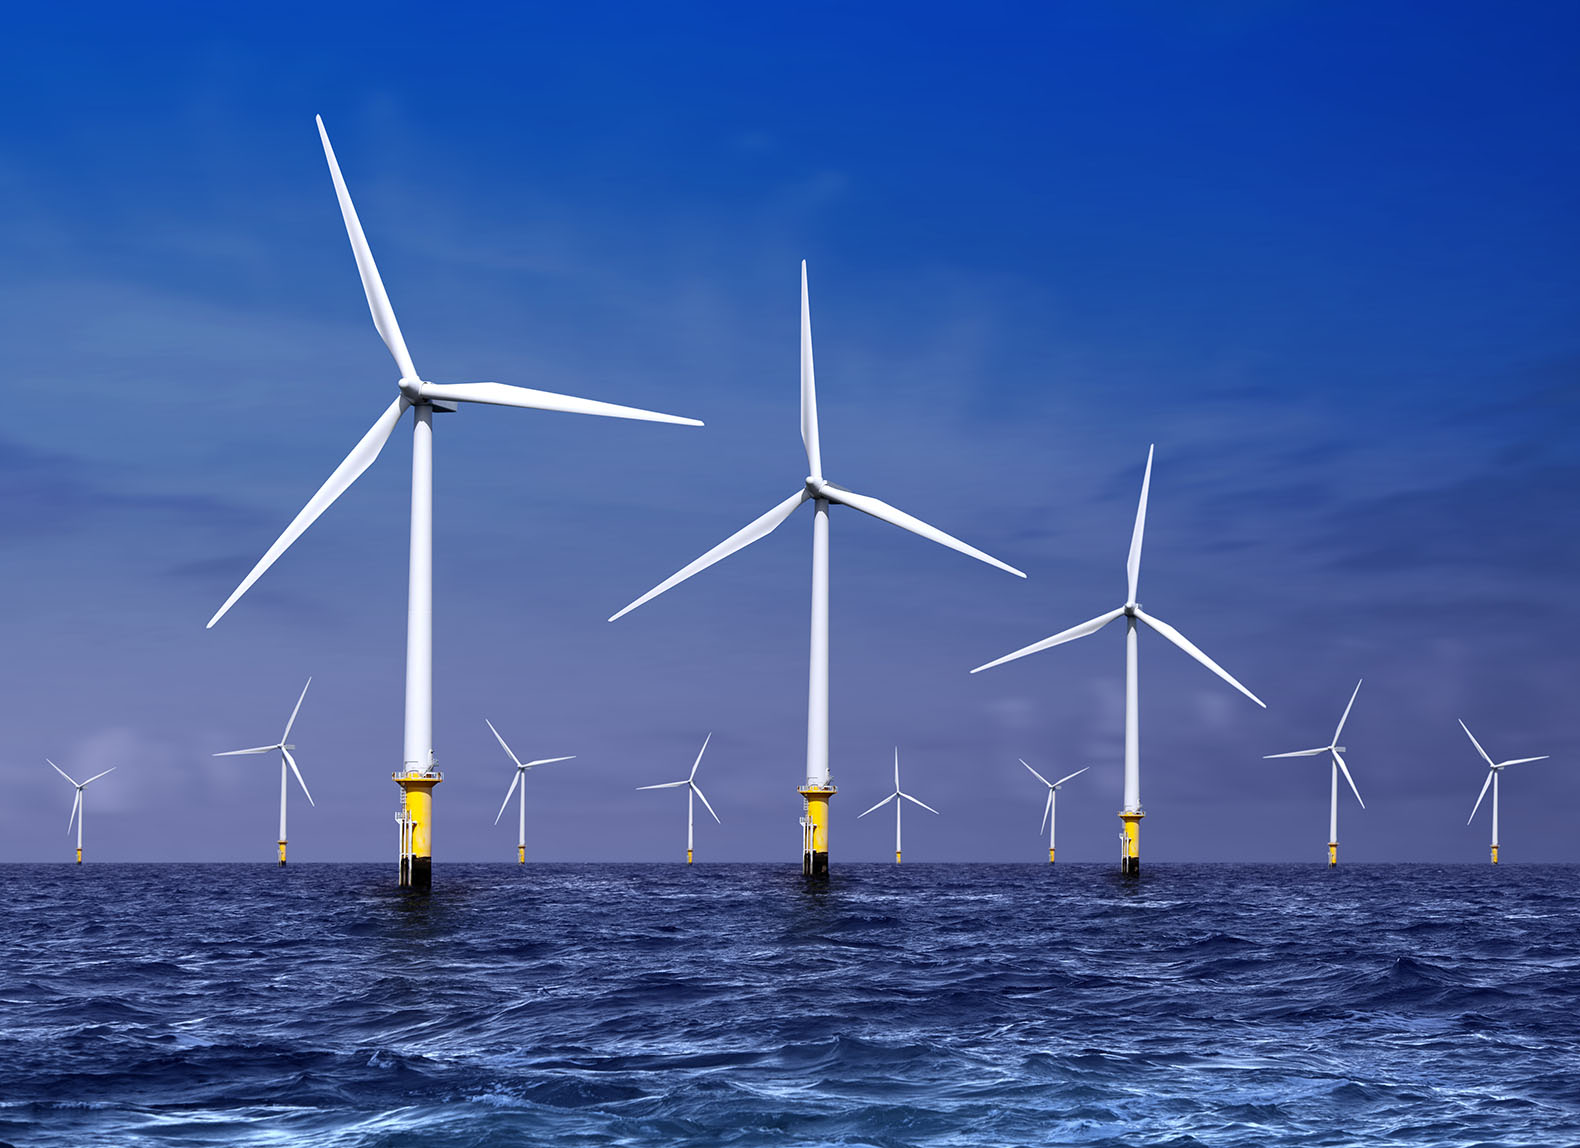 The UK will soon house the world's largest offshore wind farm